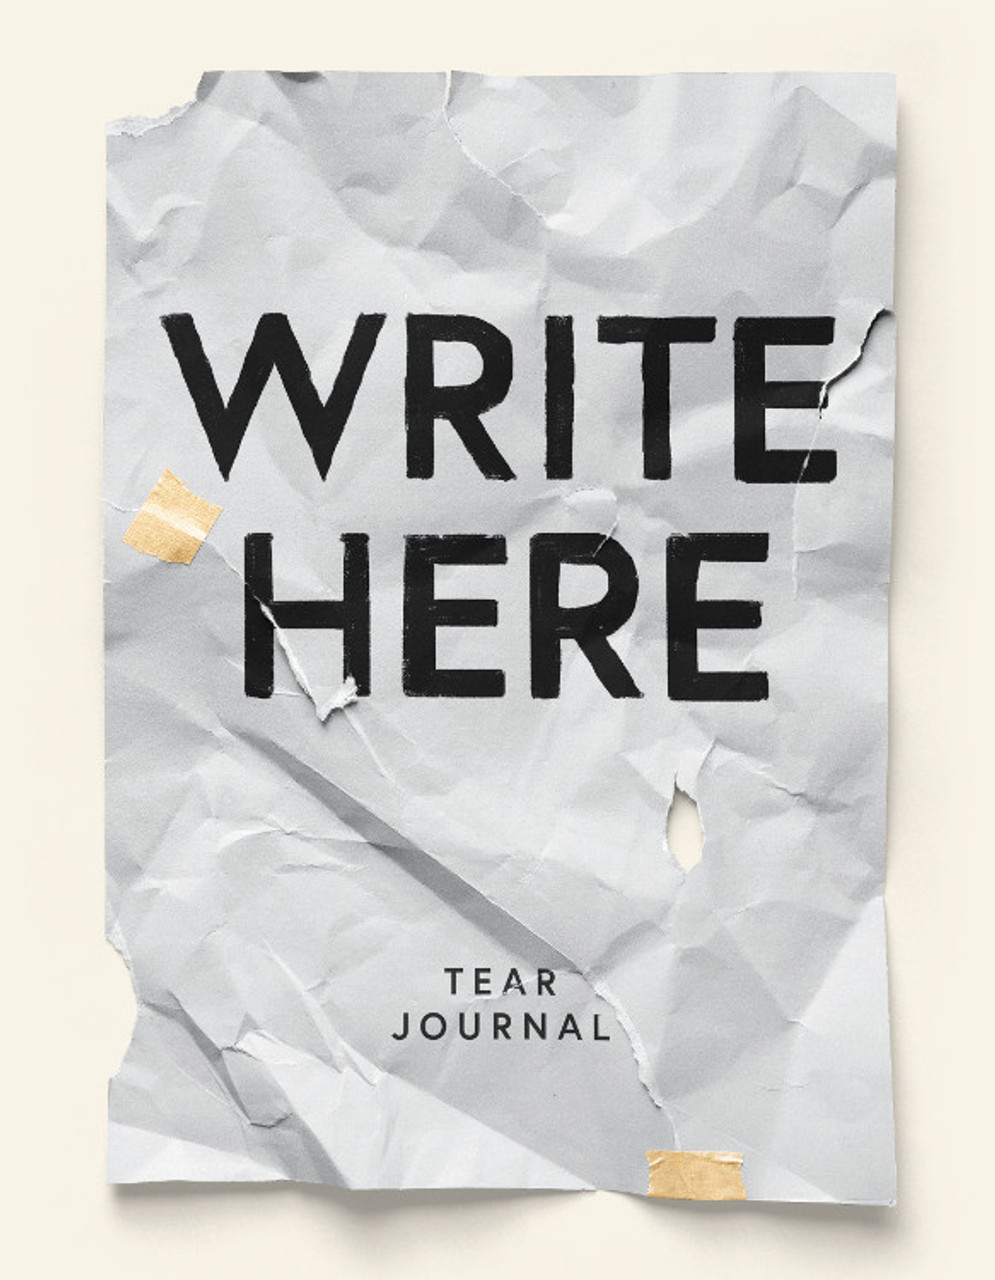 Write Here & Tear Journal, 200 Perforated Pages, Hardcover Notebook, 6x8.5 Easy Tear Pages